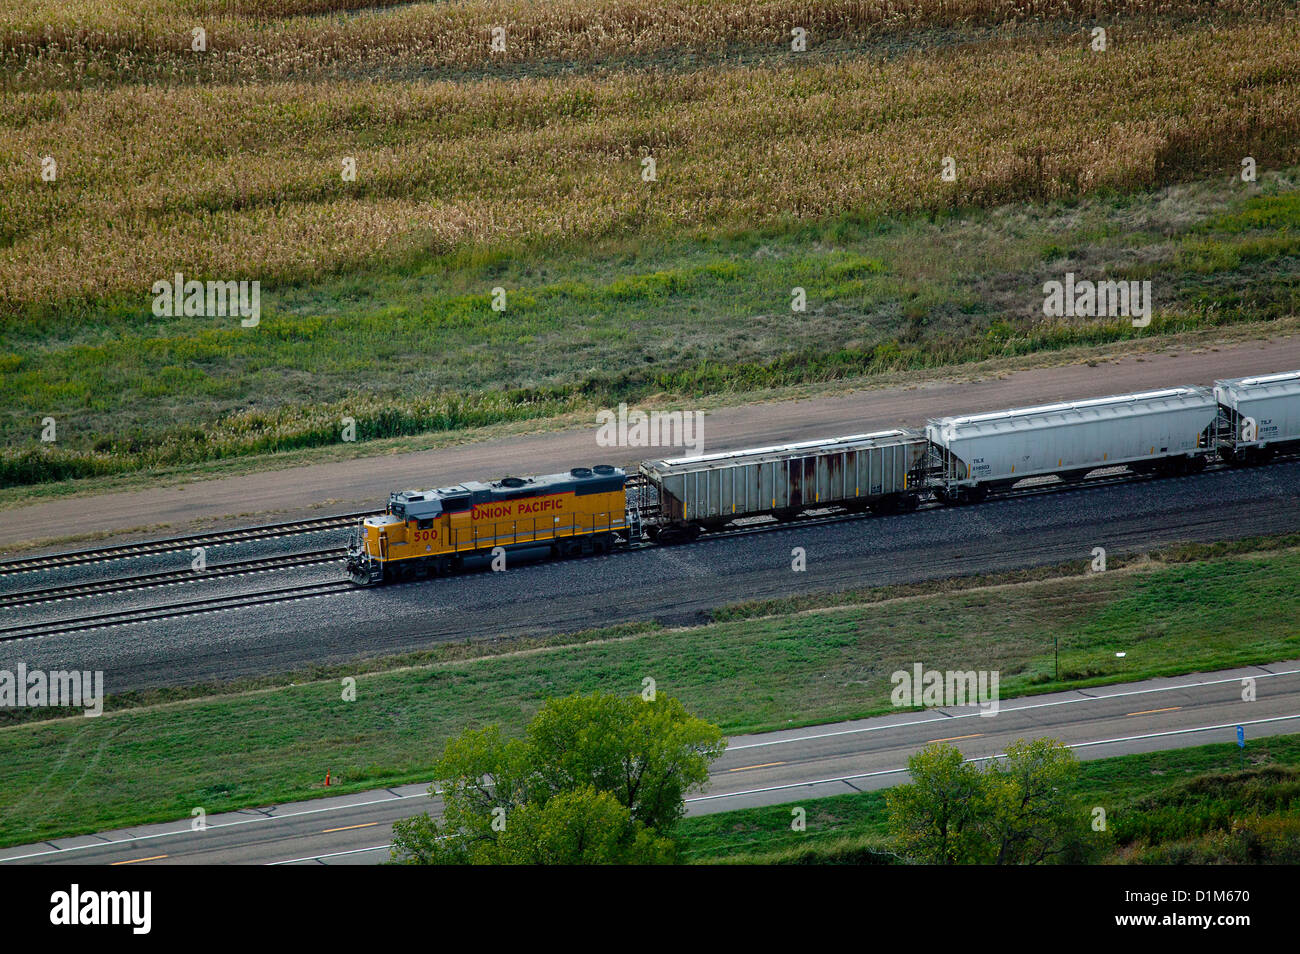 Photographie aérienne Union Pacific locomotive voitures Nebraska Photo Stock